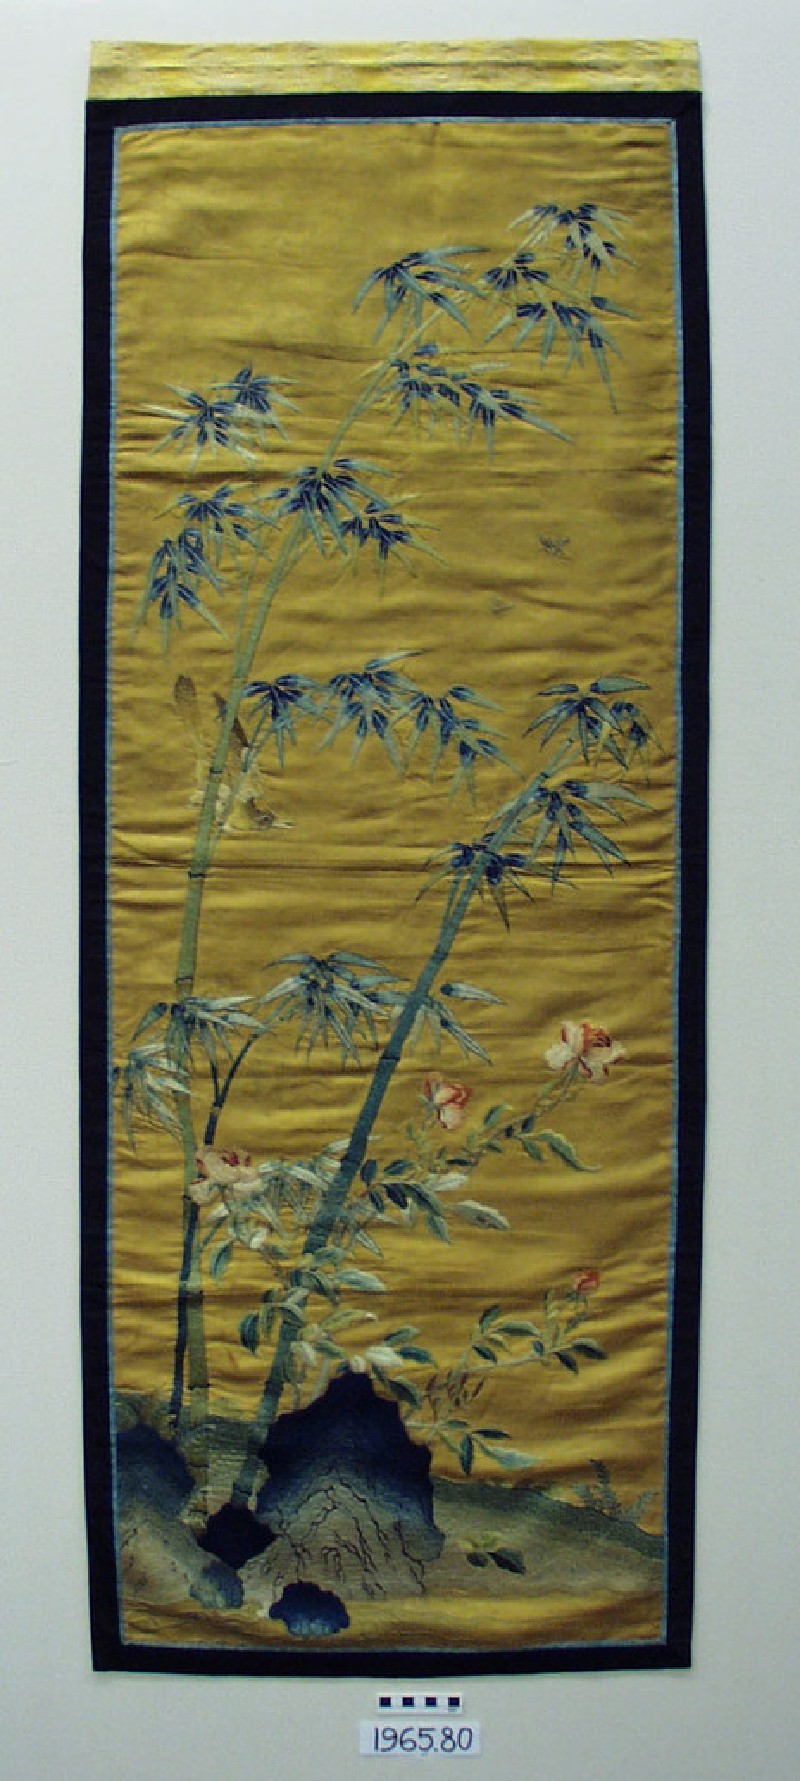 Embroidered furnishing panel (EA1965.80, record shot)